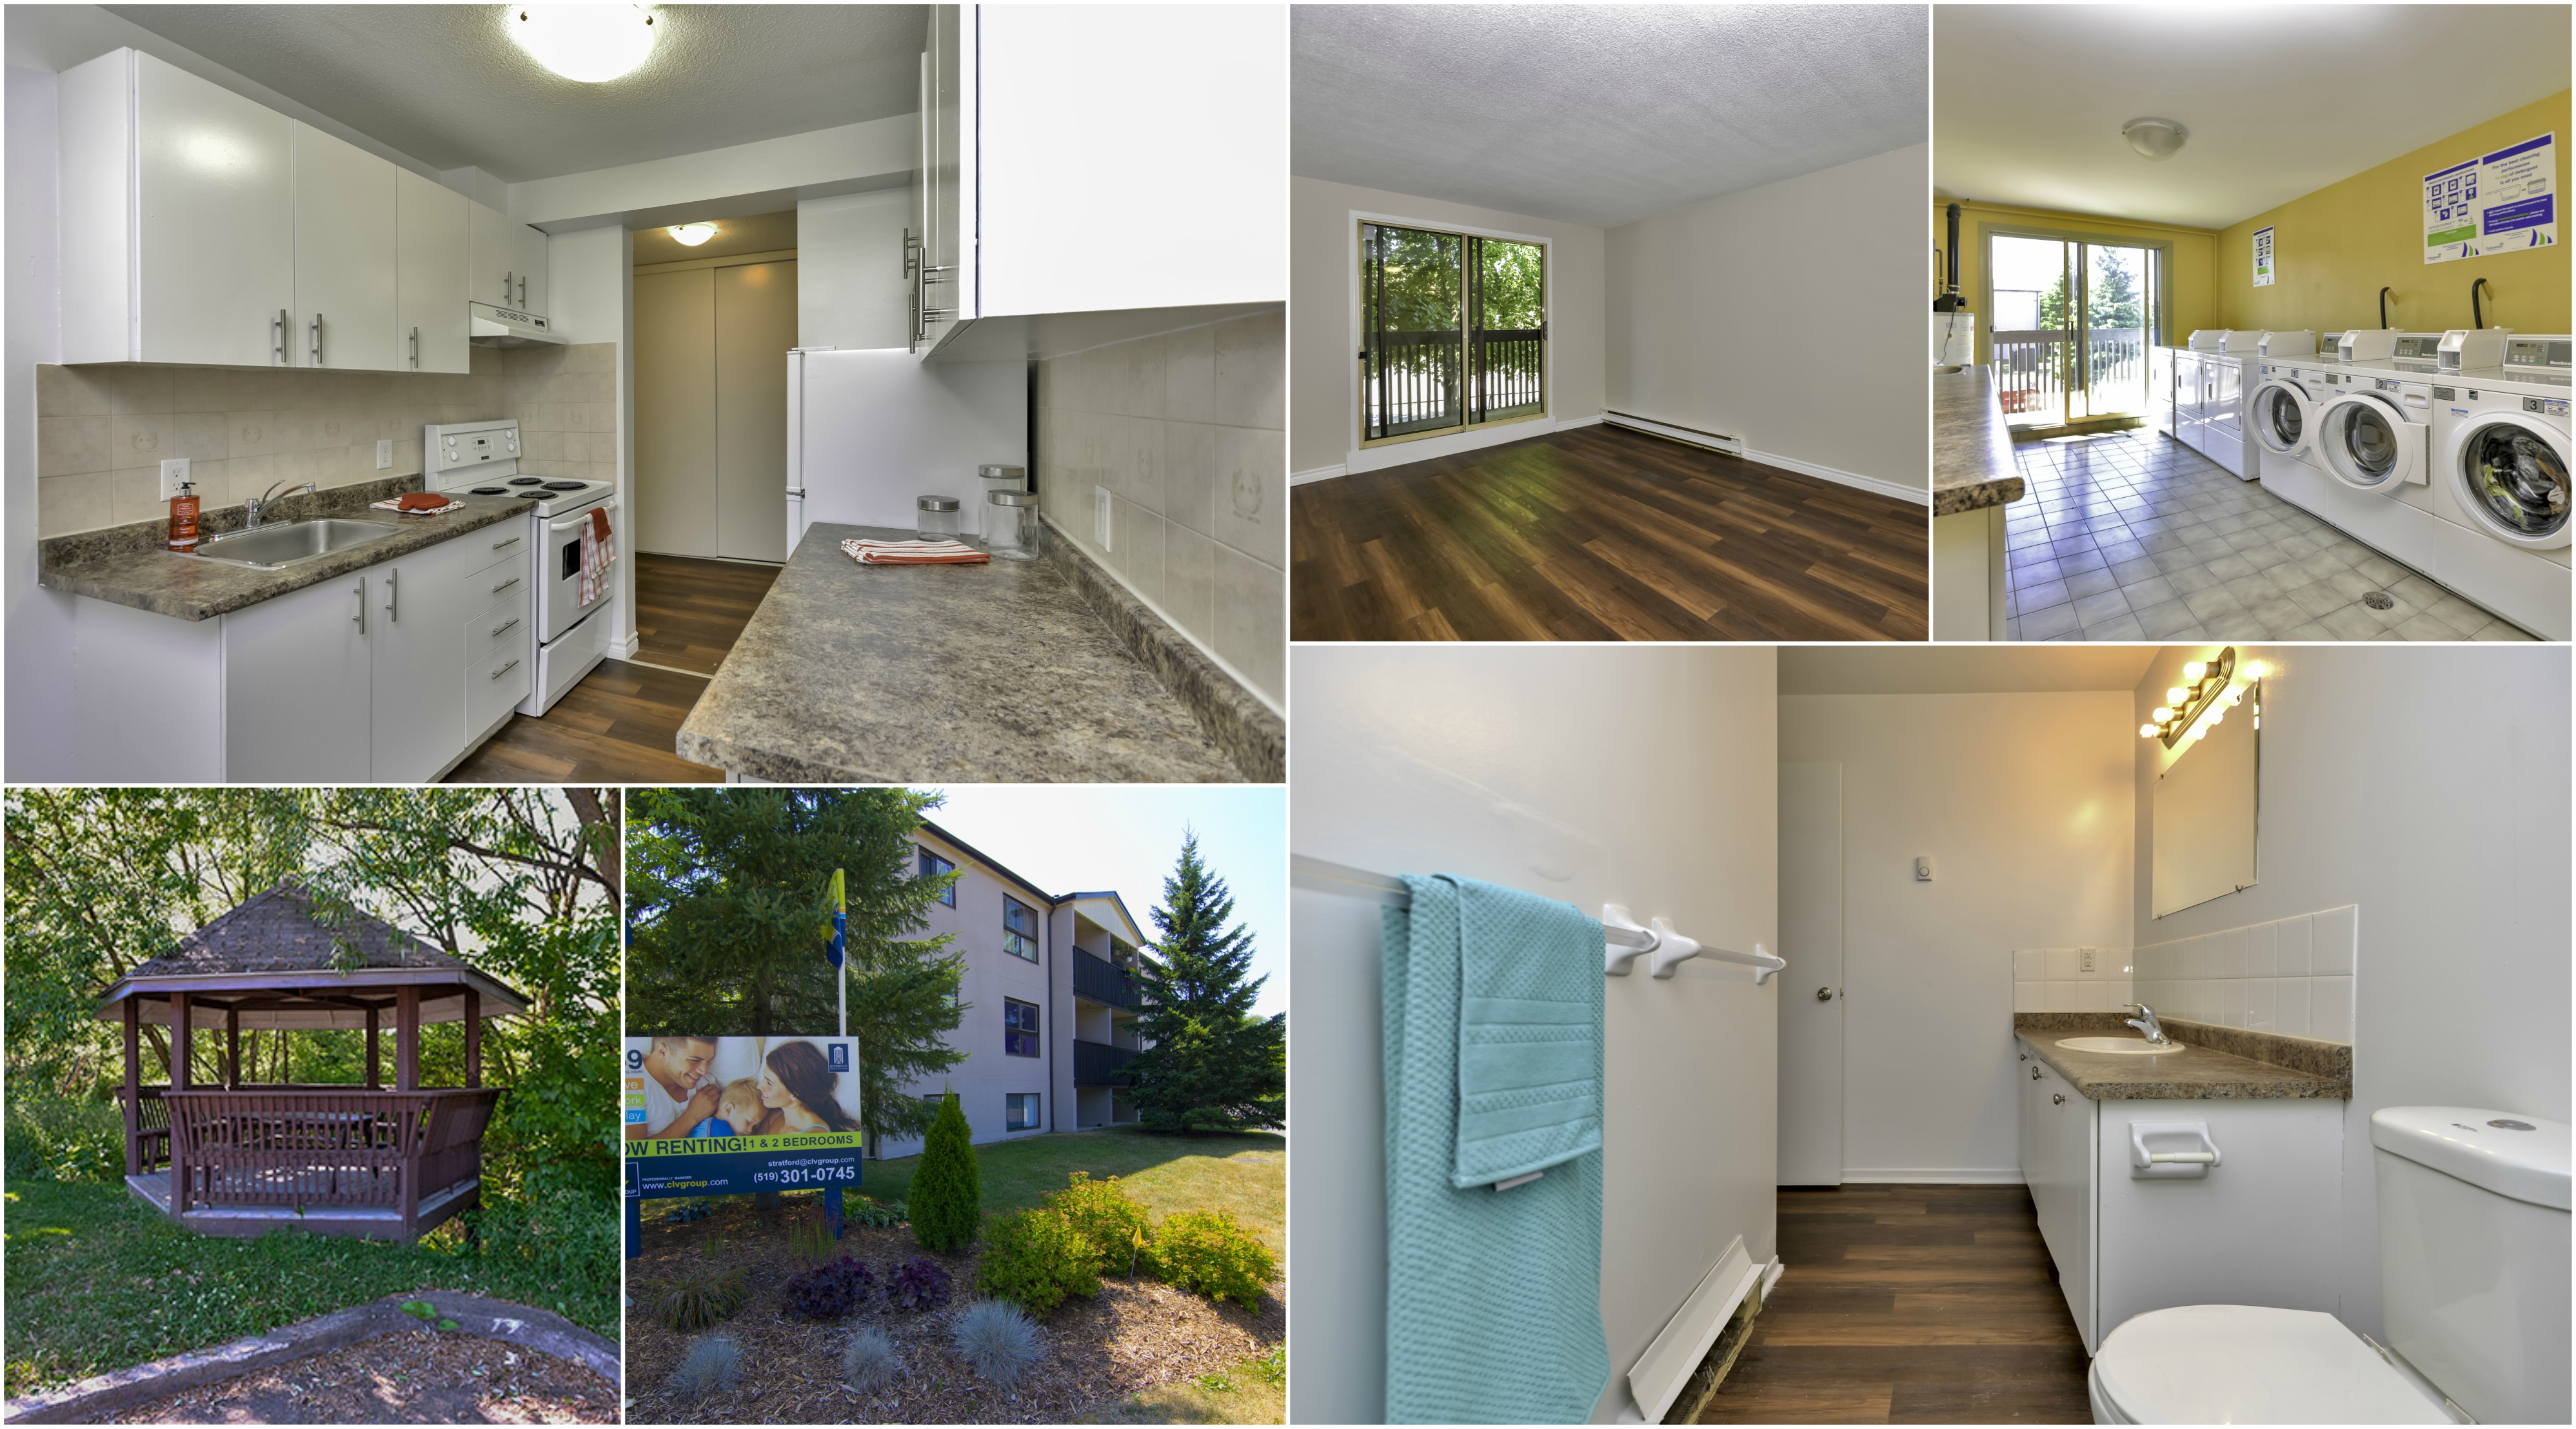 51 59 Campbell Stratford_Stratford Apartments for Rent_CLV Group